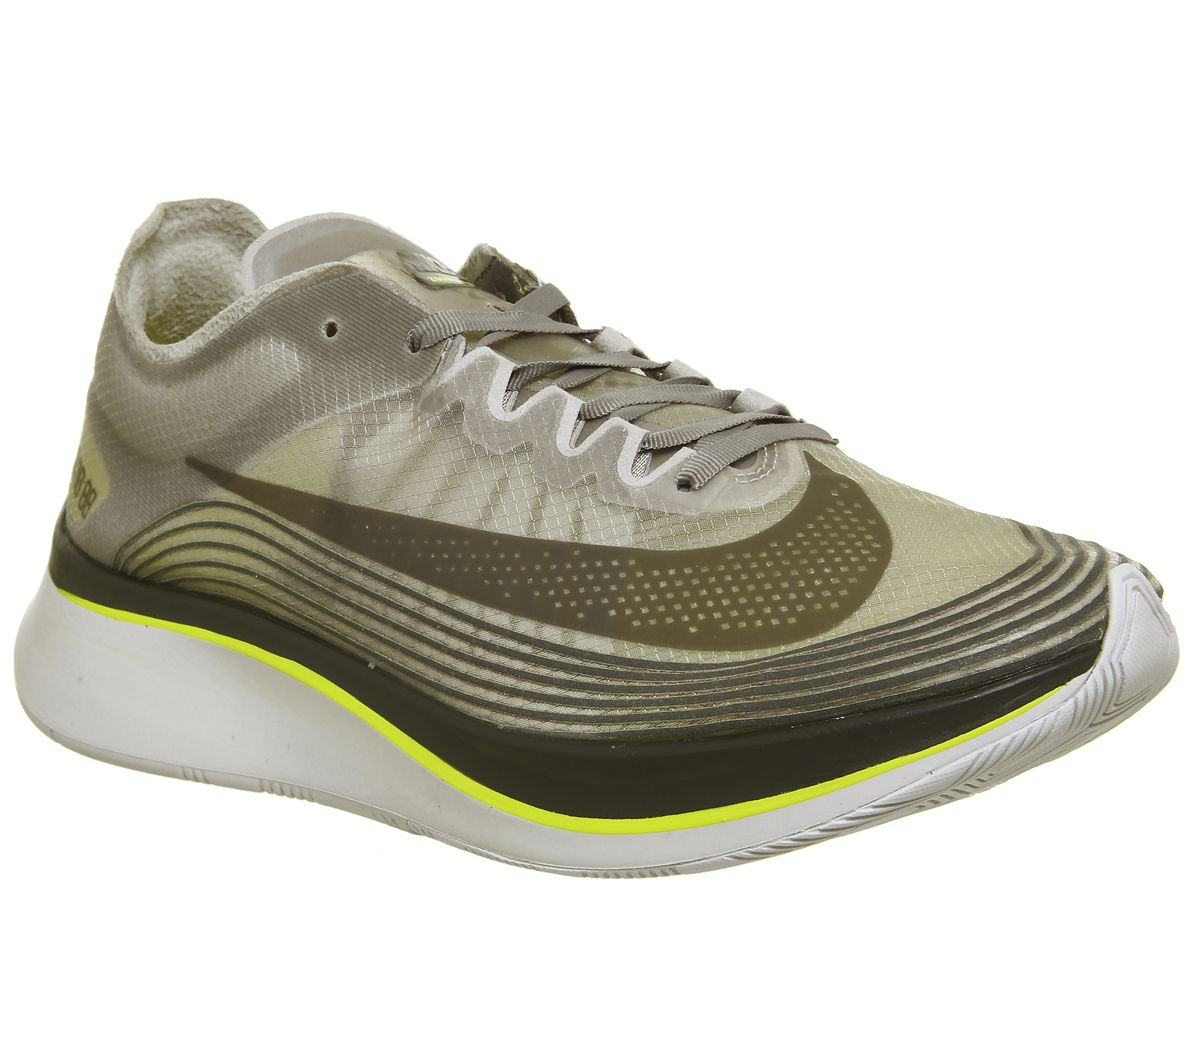 91a78d8c0134 Nike Zoom Fly Sepia Stone Sonic Yellow - His trainers